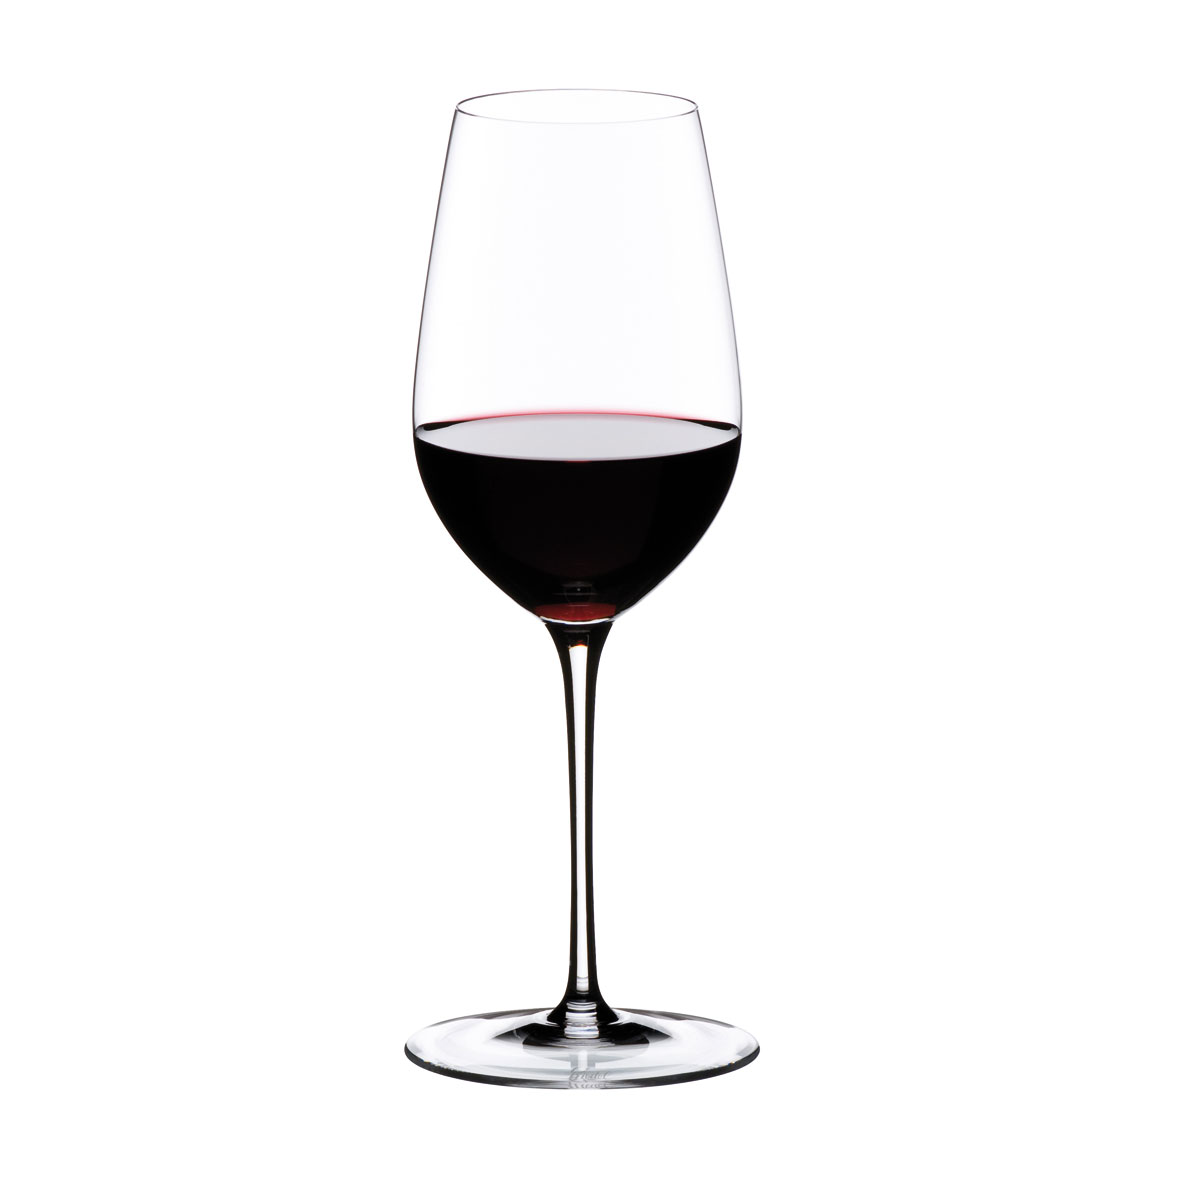 Riedel Sommeliers, Hand Made Grand Cru Riesling, Zinfandel Wine Glass, Single